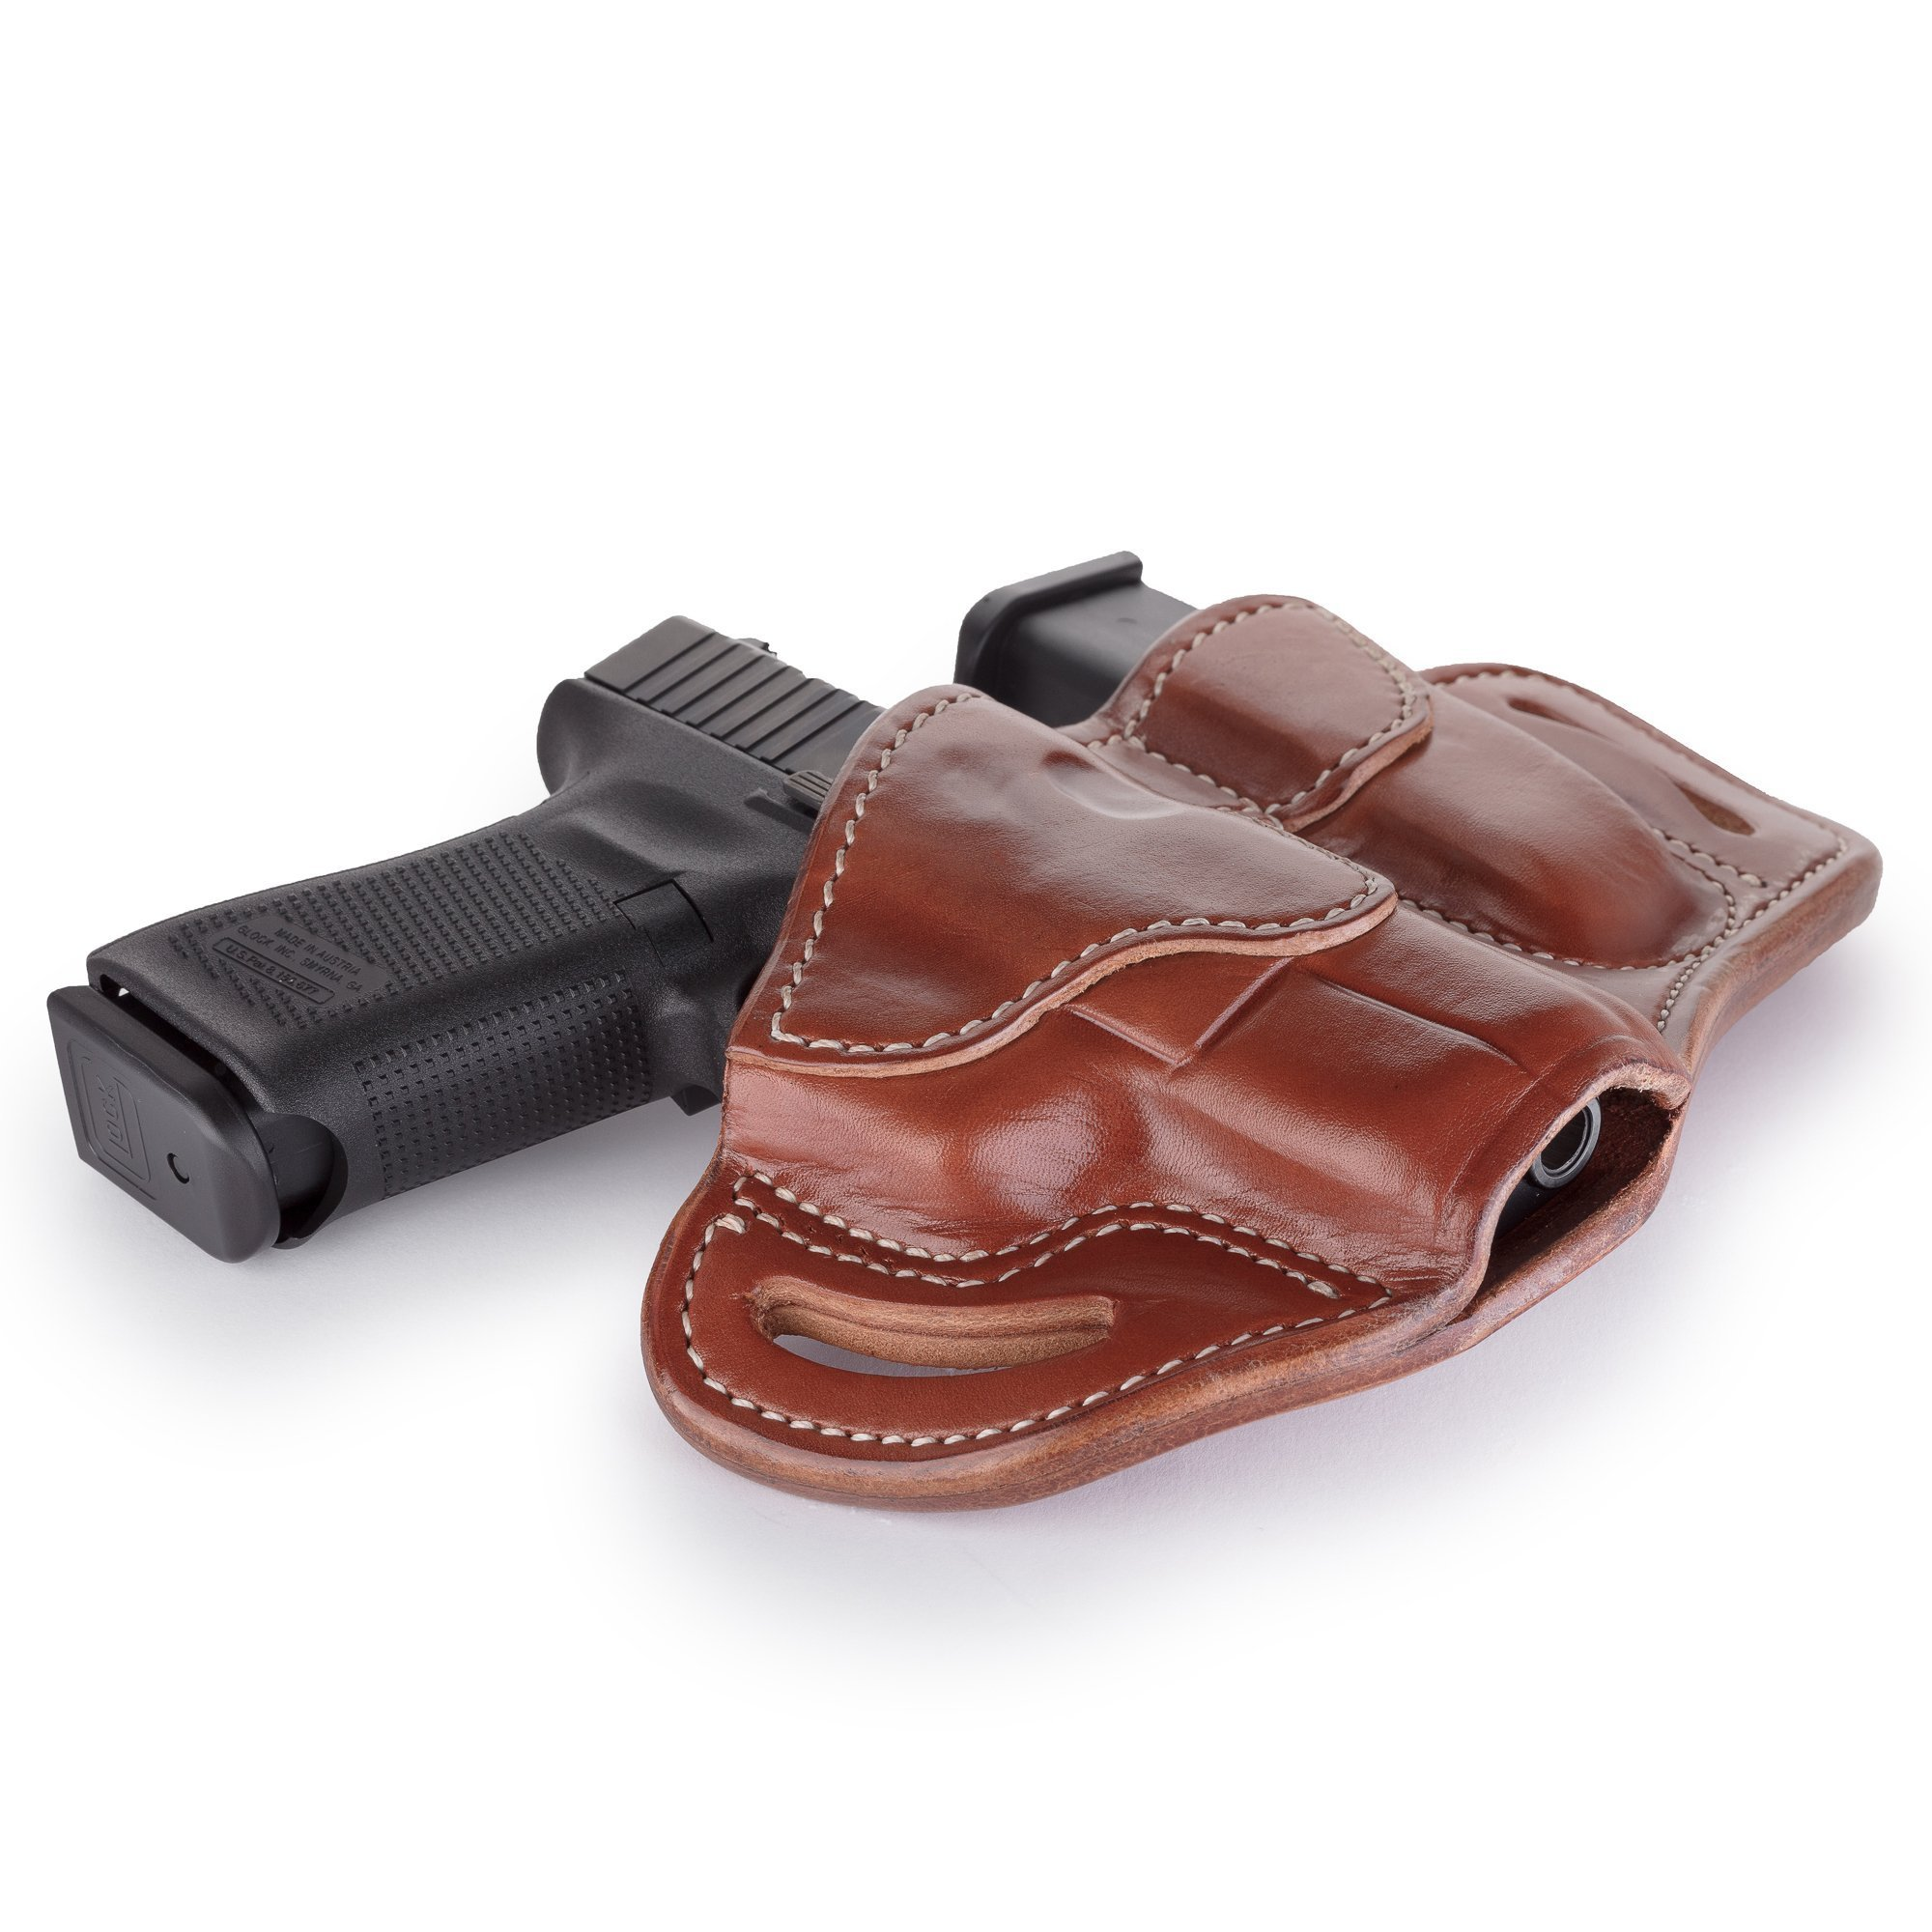 1791 GUNLEATHER Glock 19 Holster - Right Hand OWB G19 Leather Holster for Belts - Fits Glock 19, 23, 26, 27, H&K VP40 and Springfield XDS (BH2.1) (Combo Classic Brown) by 1791 GUNLEATHER (Image #3)